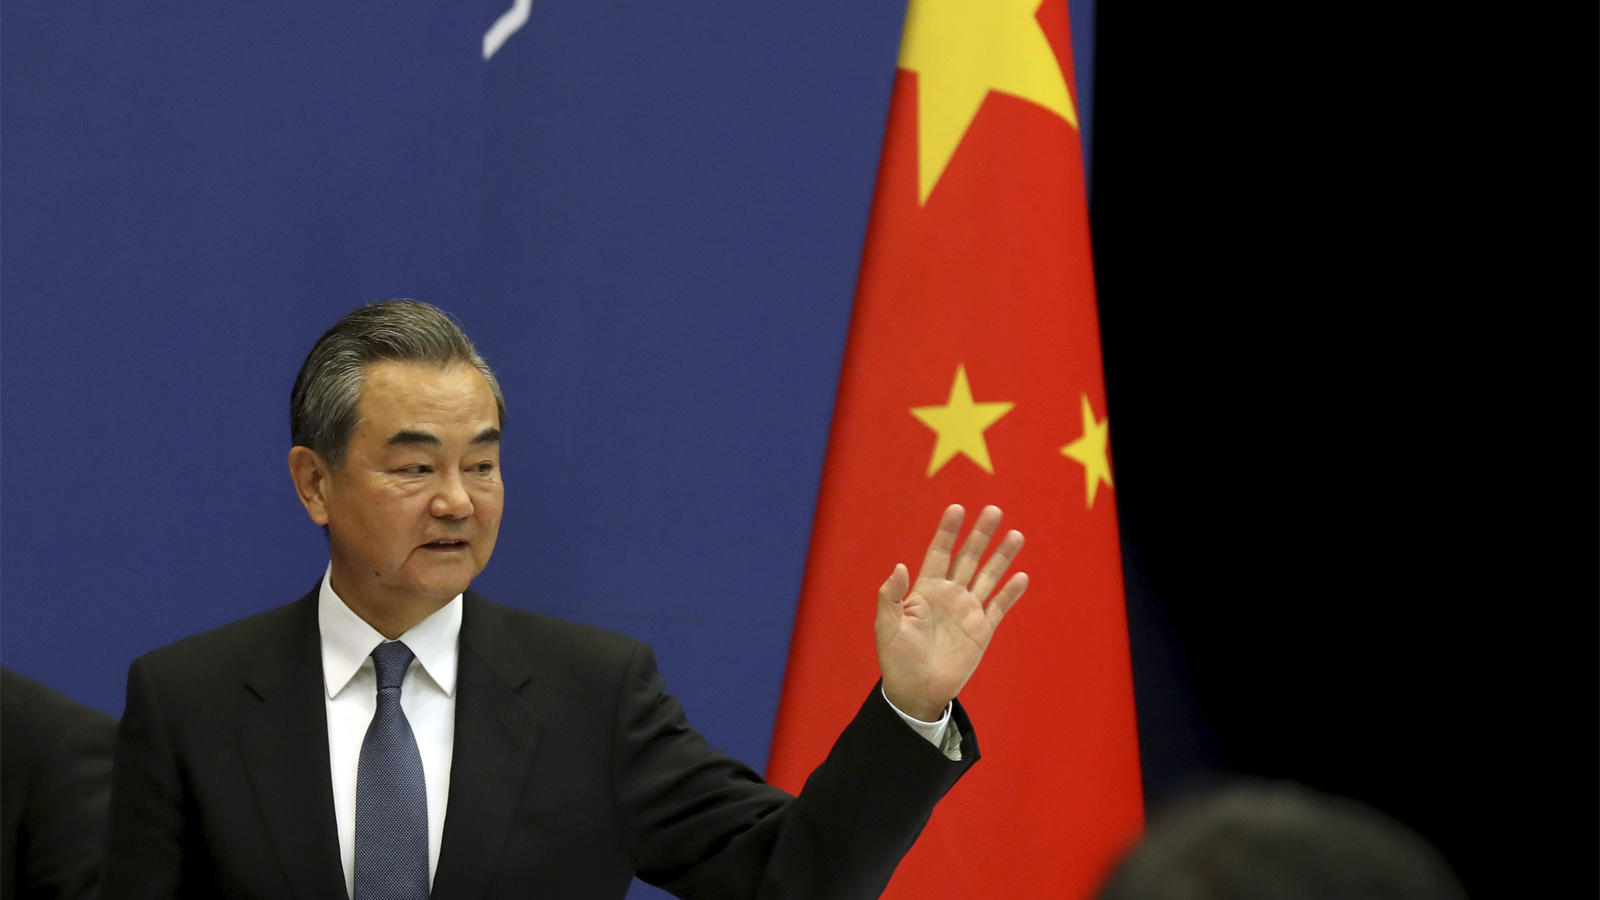 china-ready-for-wuhan-style-summit-meet-with-india-despite-differences-over-bri-says-chinese-foreign-minister